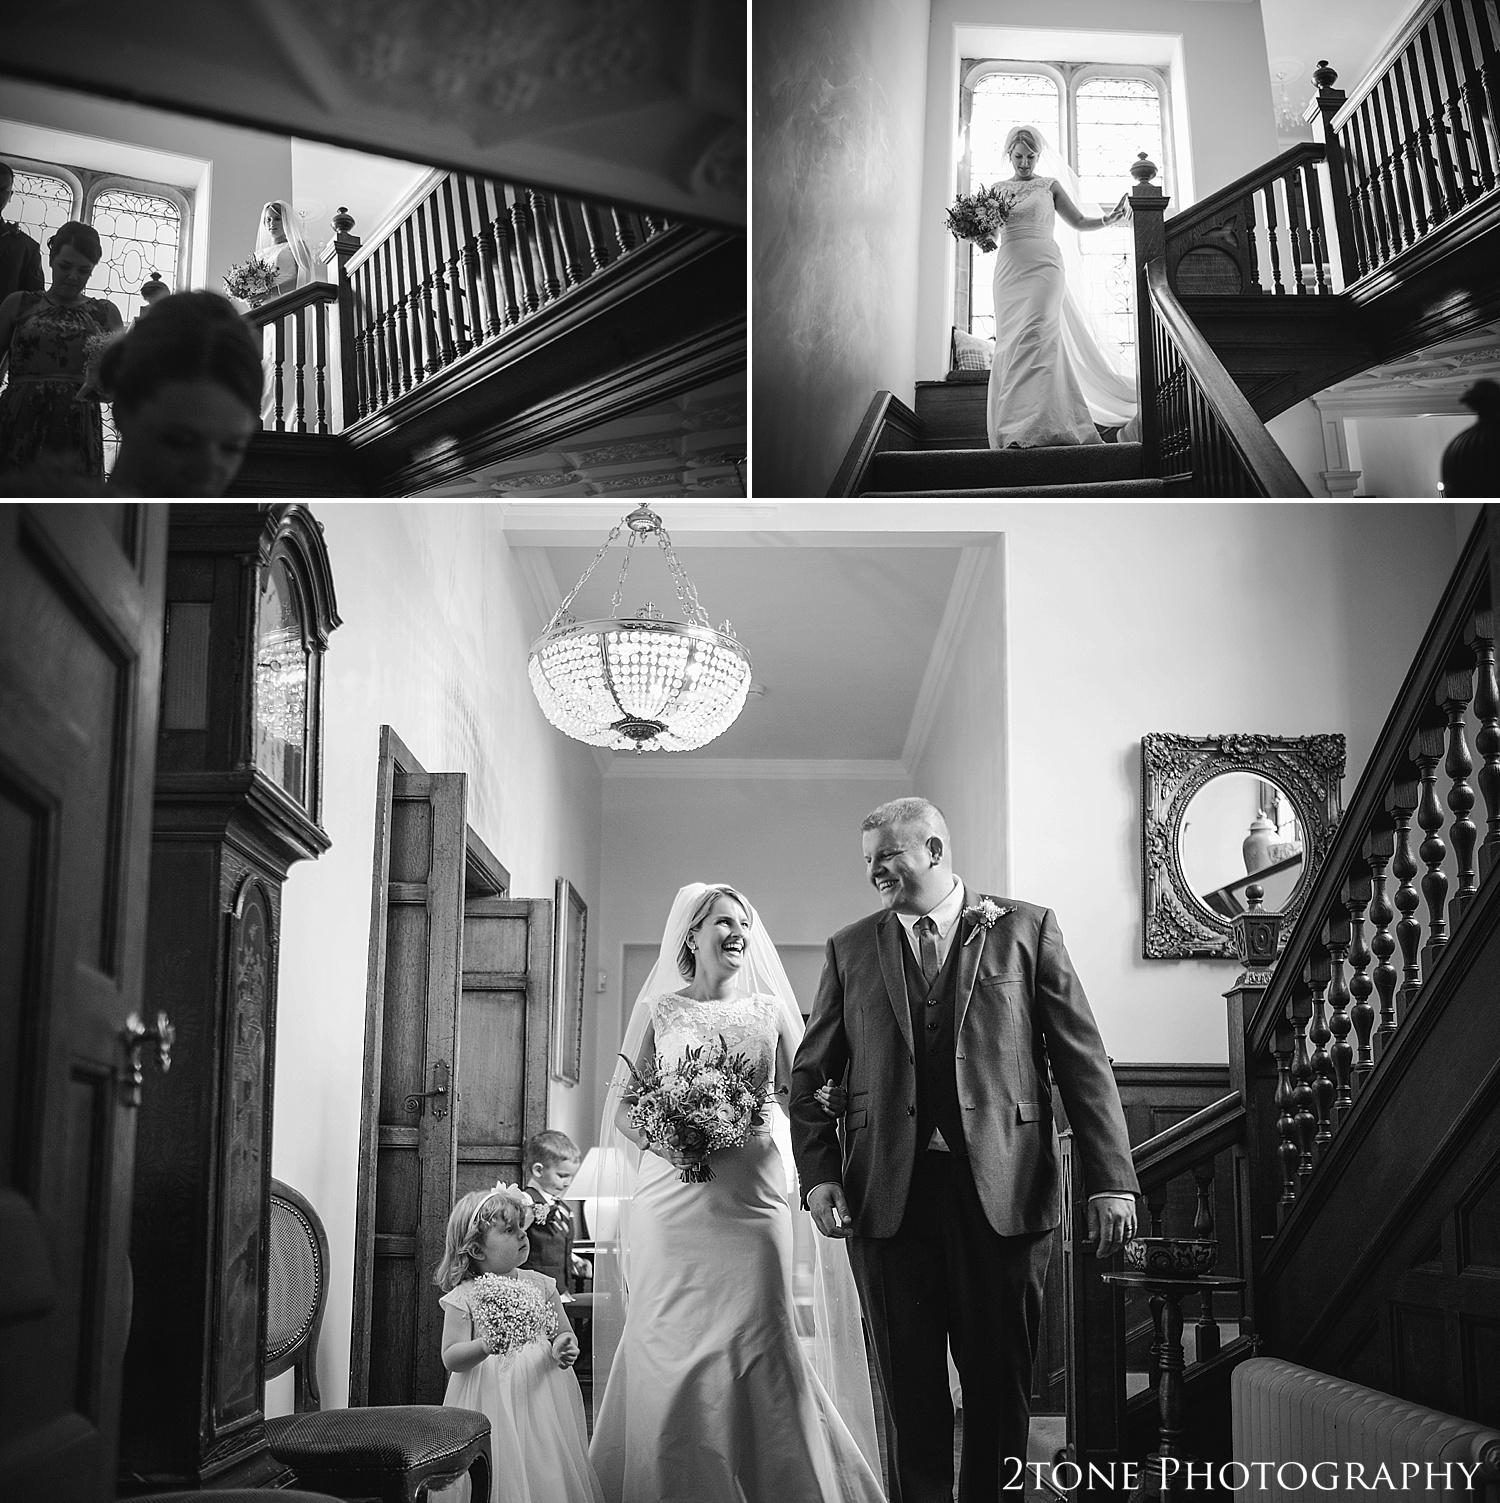 The bride and her brother.  Wedding photography at Guyzance Hall by wedding photographers www.2tonephotography.co.uk